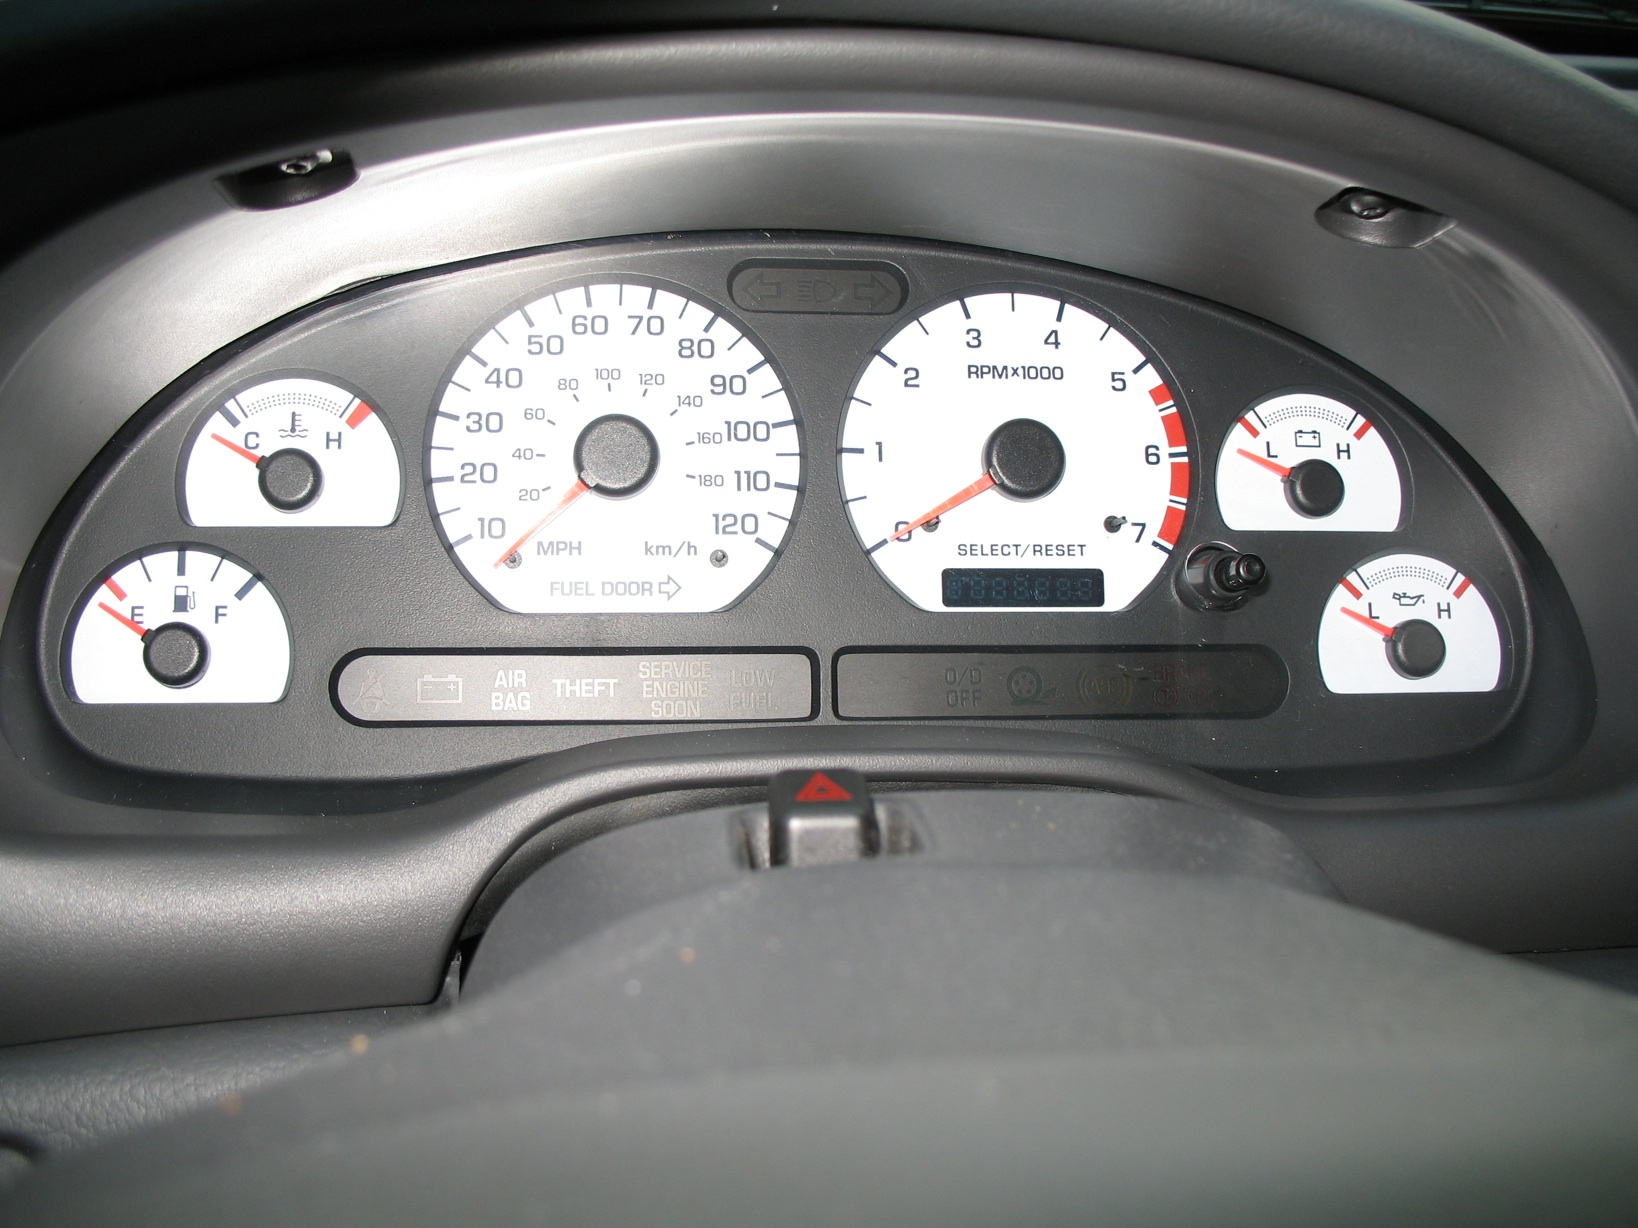 1999-2004 Mustang 3.8L White Face Gauge Kit w/ 120Mph Speedo